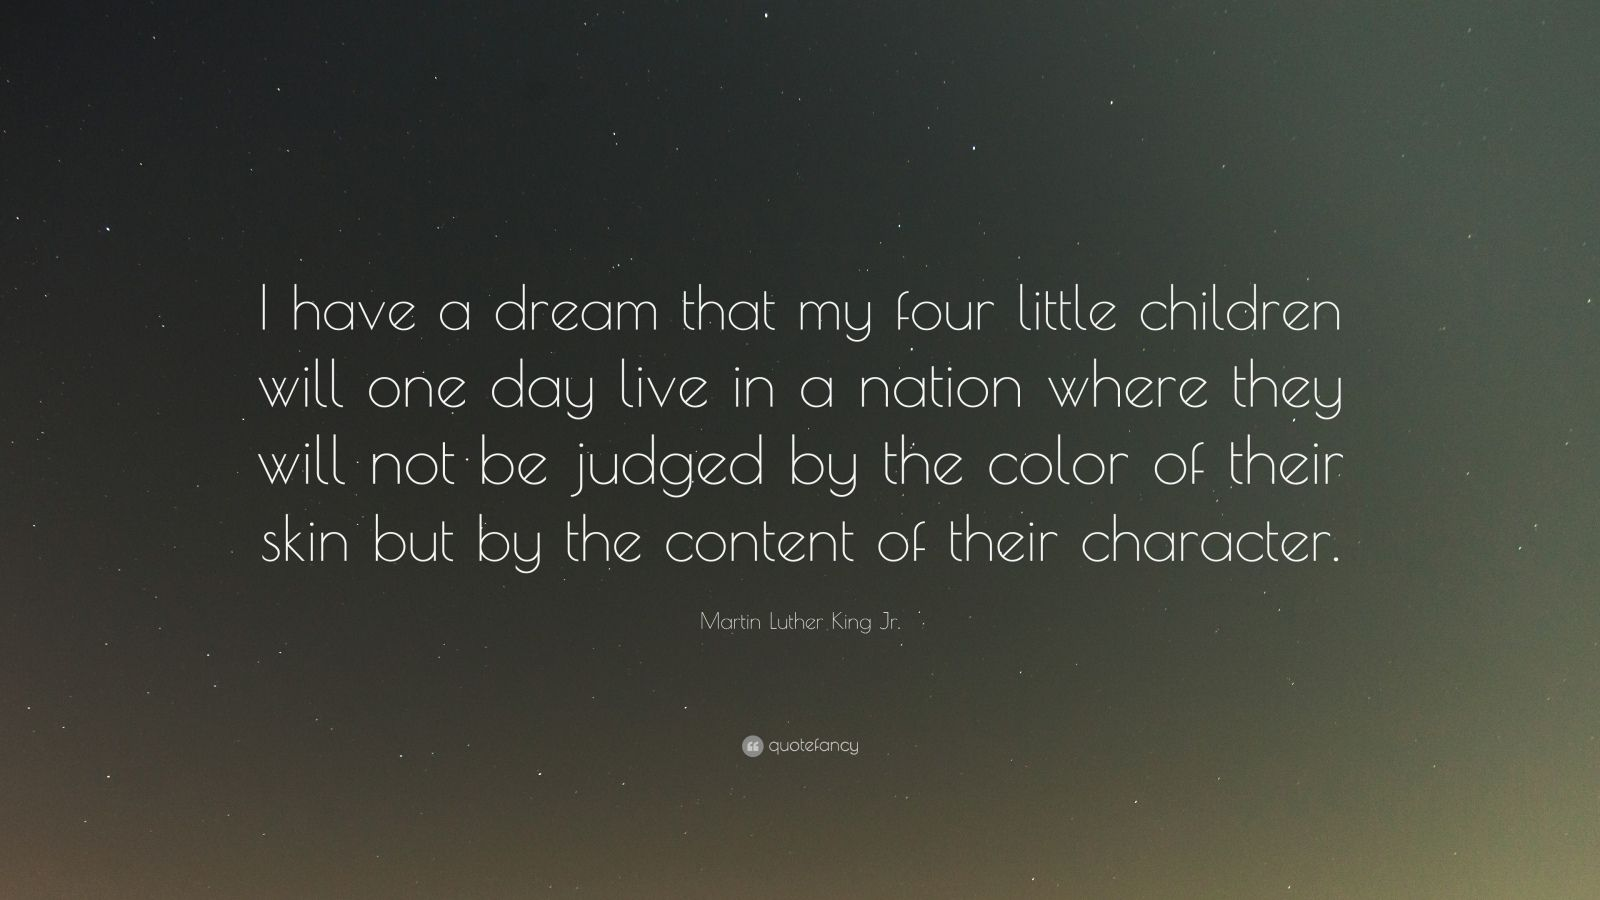 """Martin Luther King Jr. Quote: """"I have a dream that my four little children will one day live in a nation where they will not be judged by the color of their skin but by the content of their character."""""""